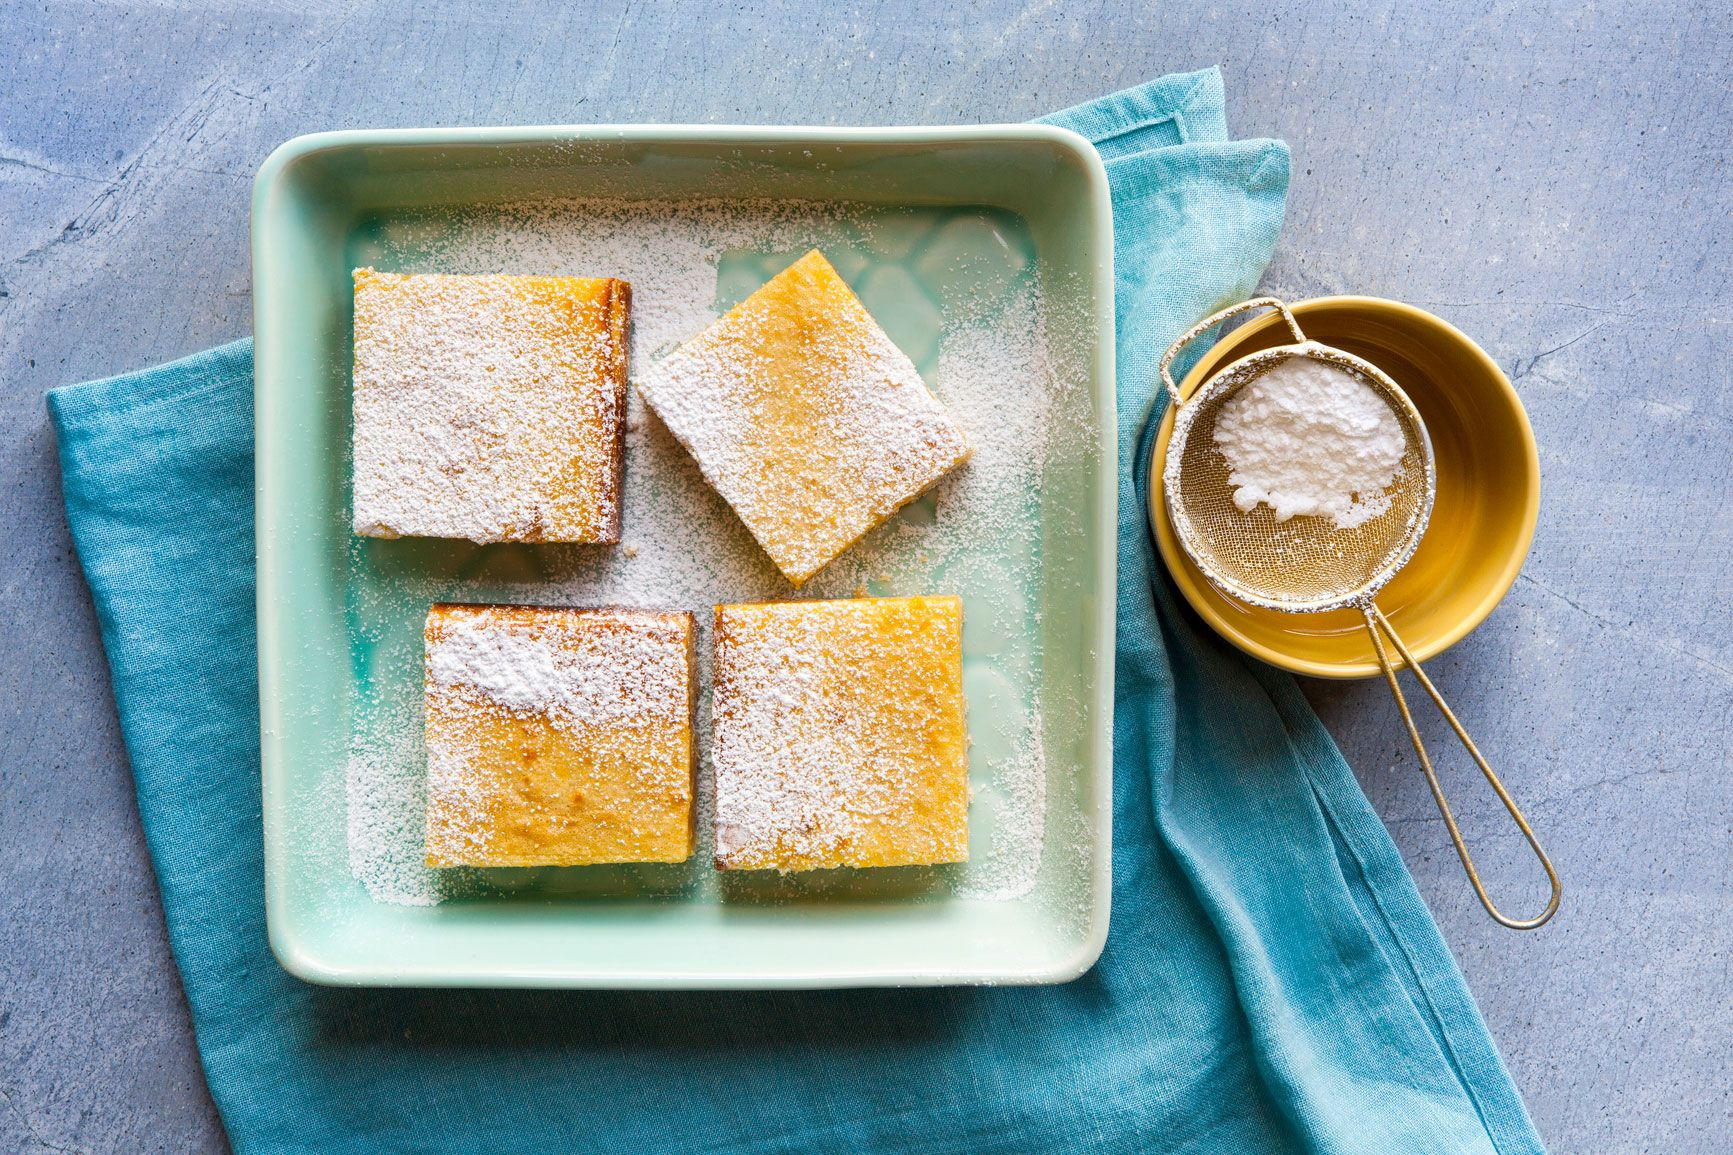 These Keto-Friendly Lemon Bars Bring a Dose of Sunshine to the Dessert Table